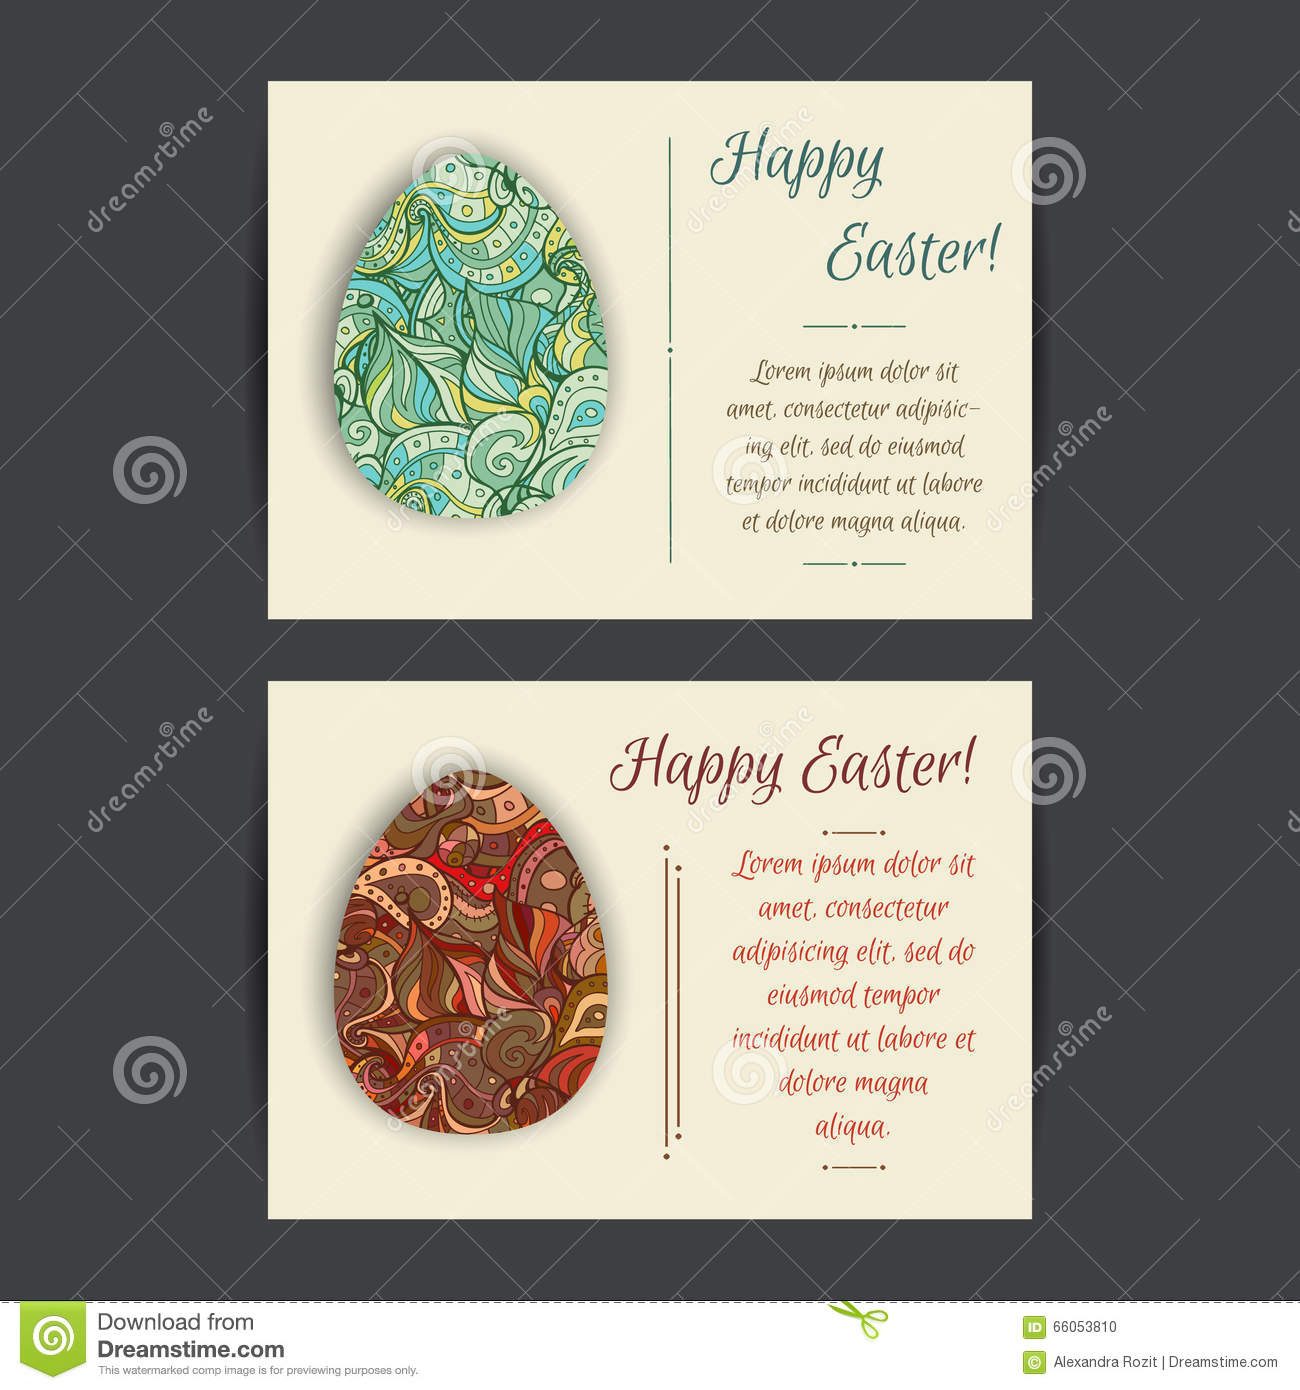 happy easter card templates stock vector illustration of company